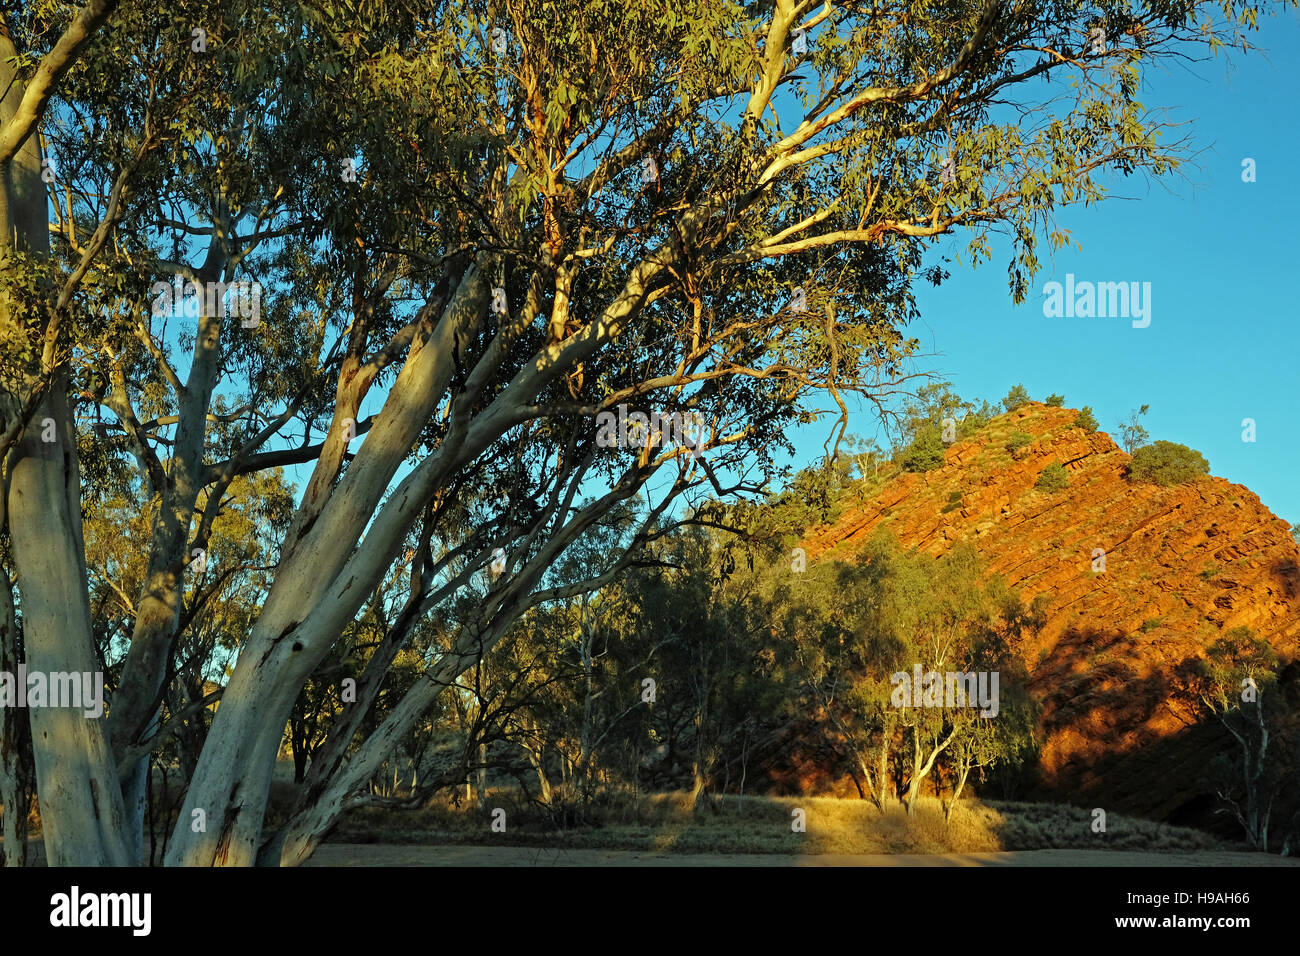 Gum trees and rocks at Honeymoon Gap, on the Roe Creek in the Macdonnell Ranges, Northern Territory, Australia - Stock Image